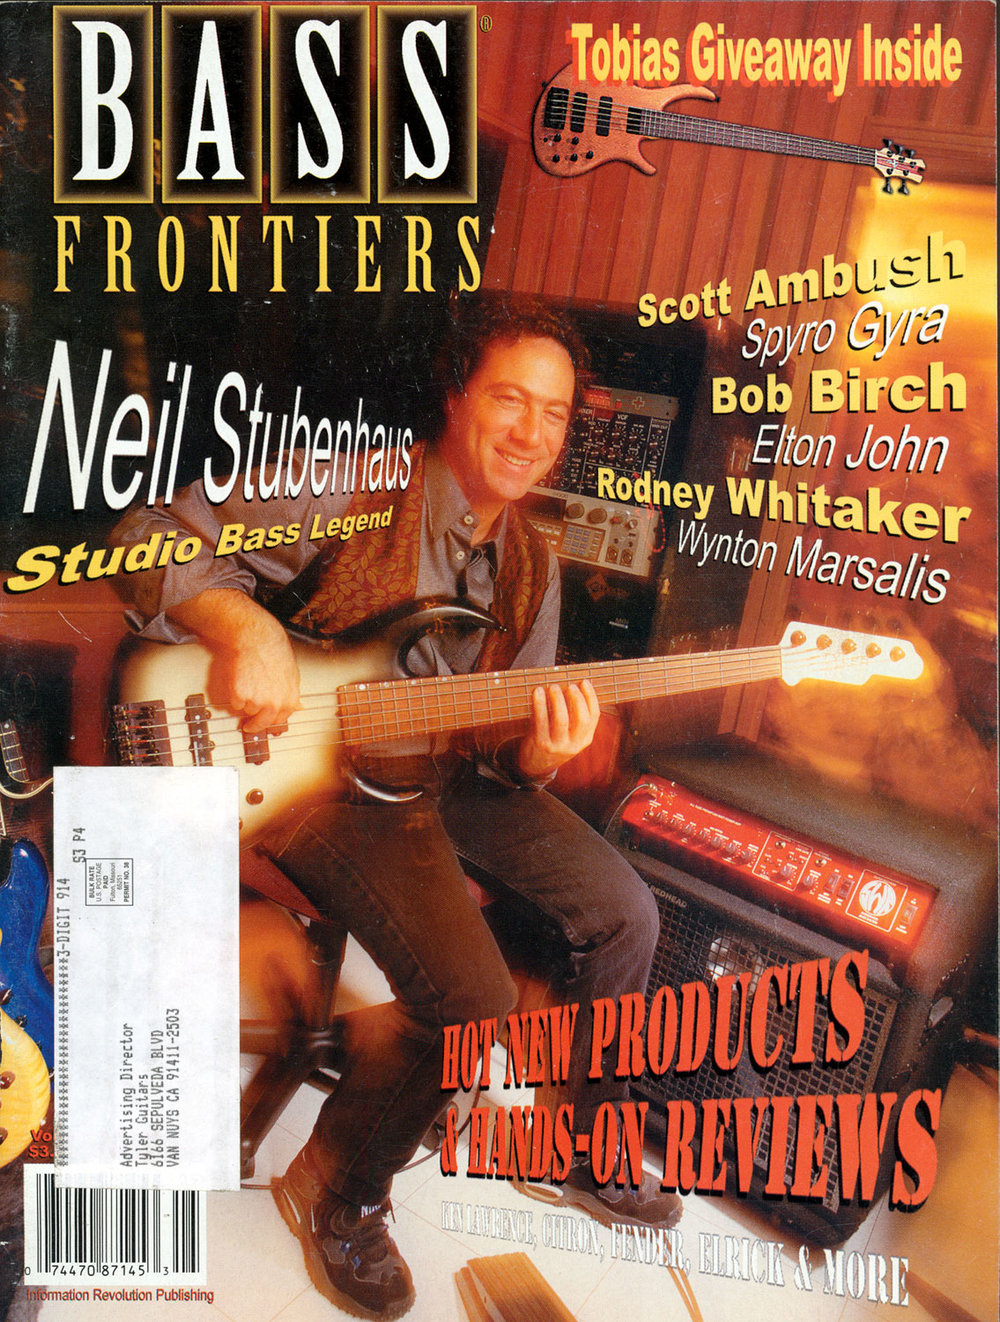 Copy of 1998 Bass Frontiers Magazine